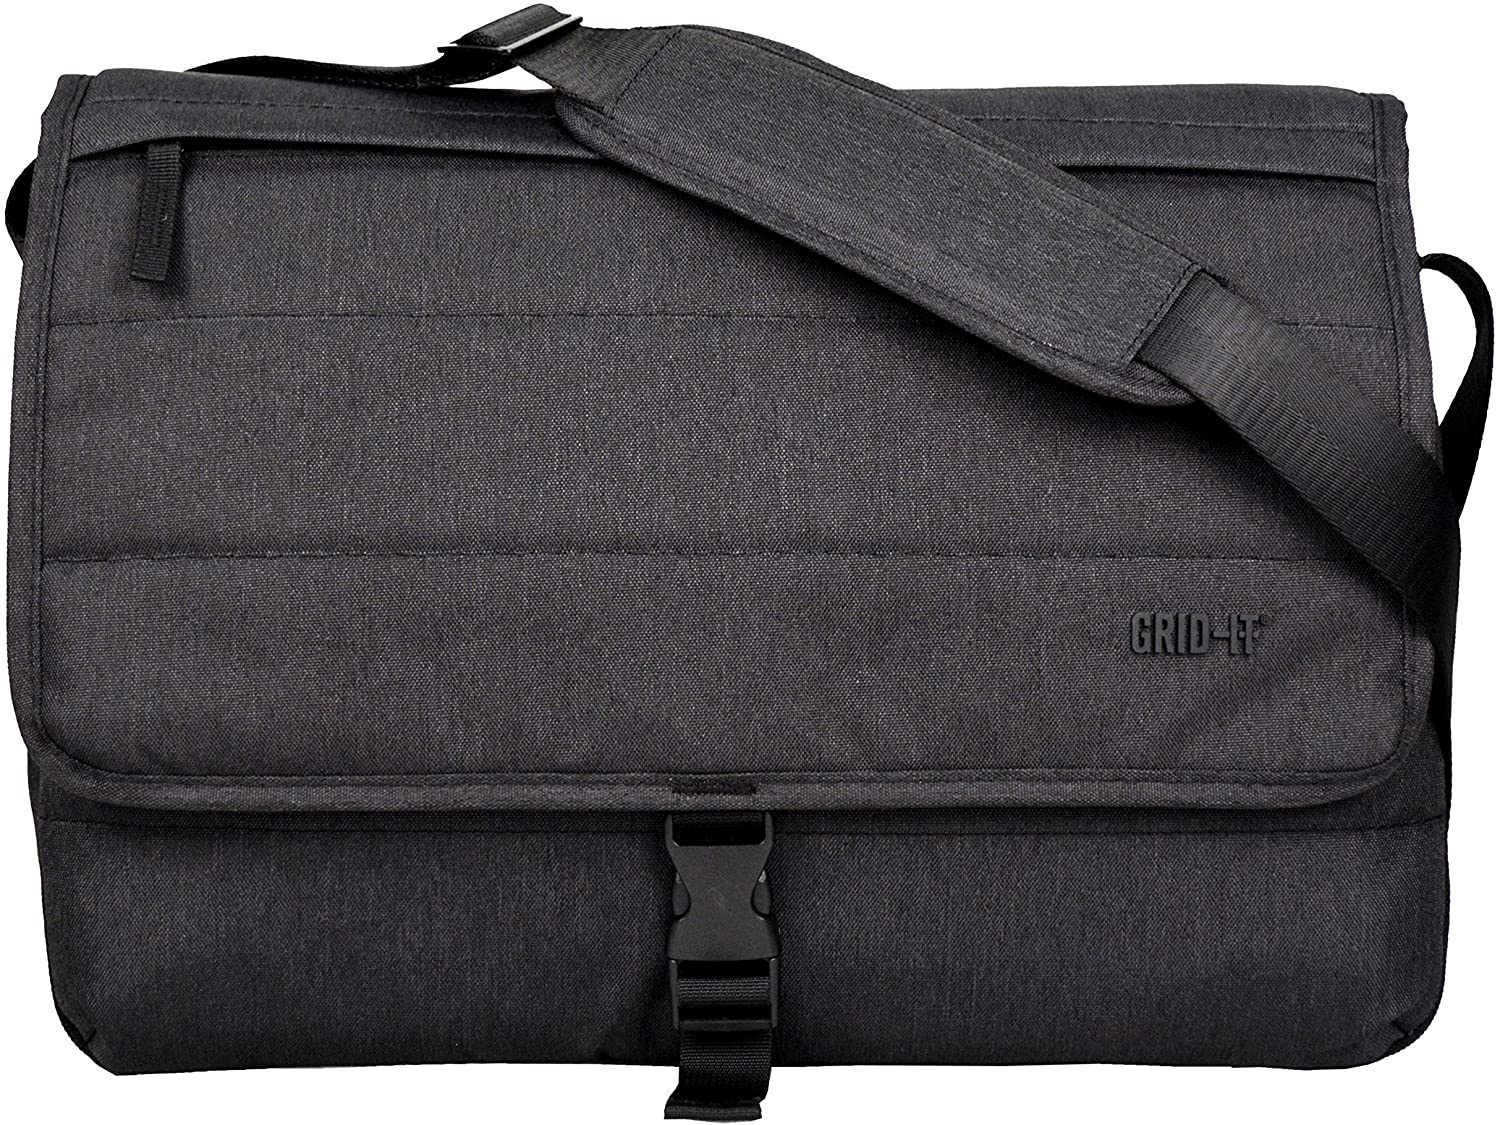 Cocoon CMB3750CH TECH 16 Messenger Bag with Built-in Grid-IT! Accessory Organizer (Charcoal)